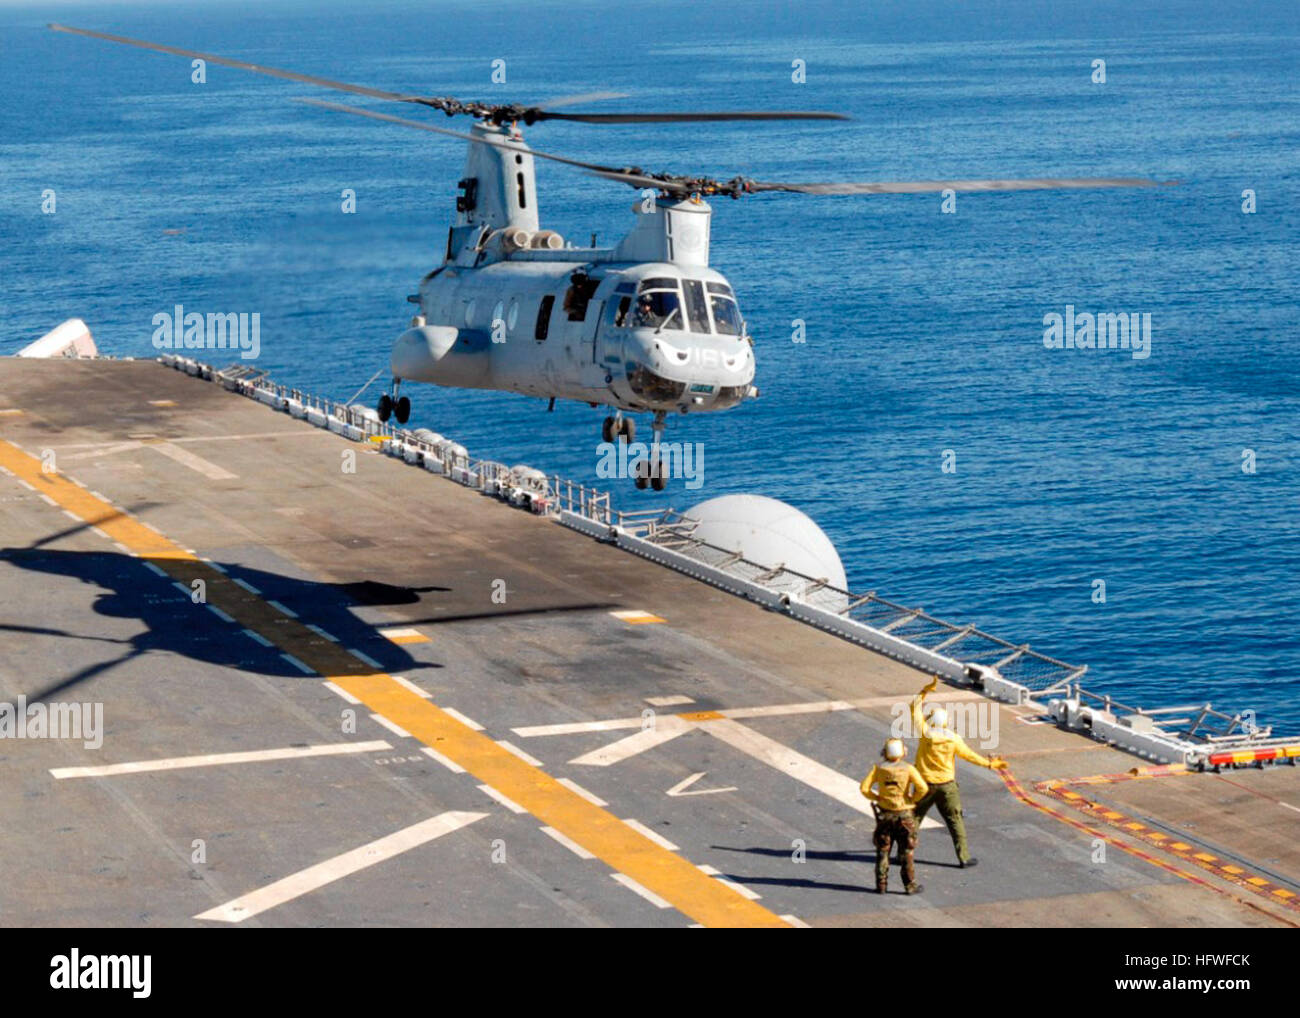 081008-N-9761H-186 PACIFIC OCEAN (Oct. 8, 2008) Aviation BoatswainÕs Mates direct a Marine Corps CH-46 Sea Knight Stock Photo